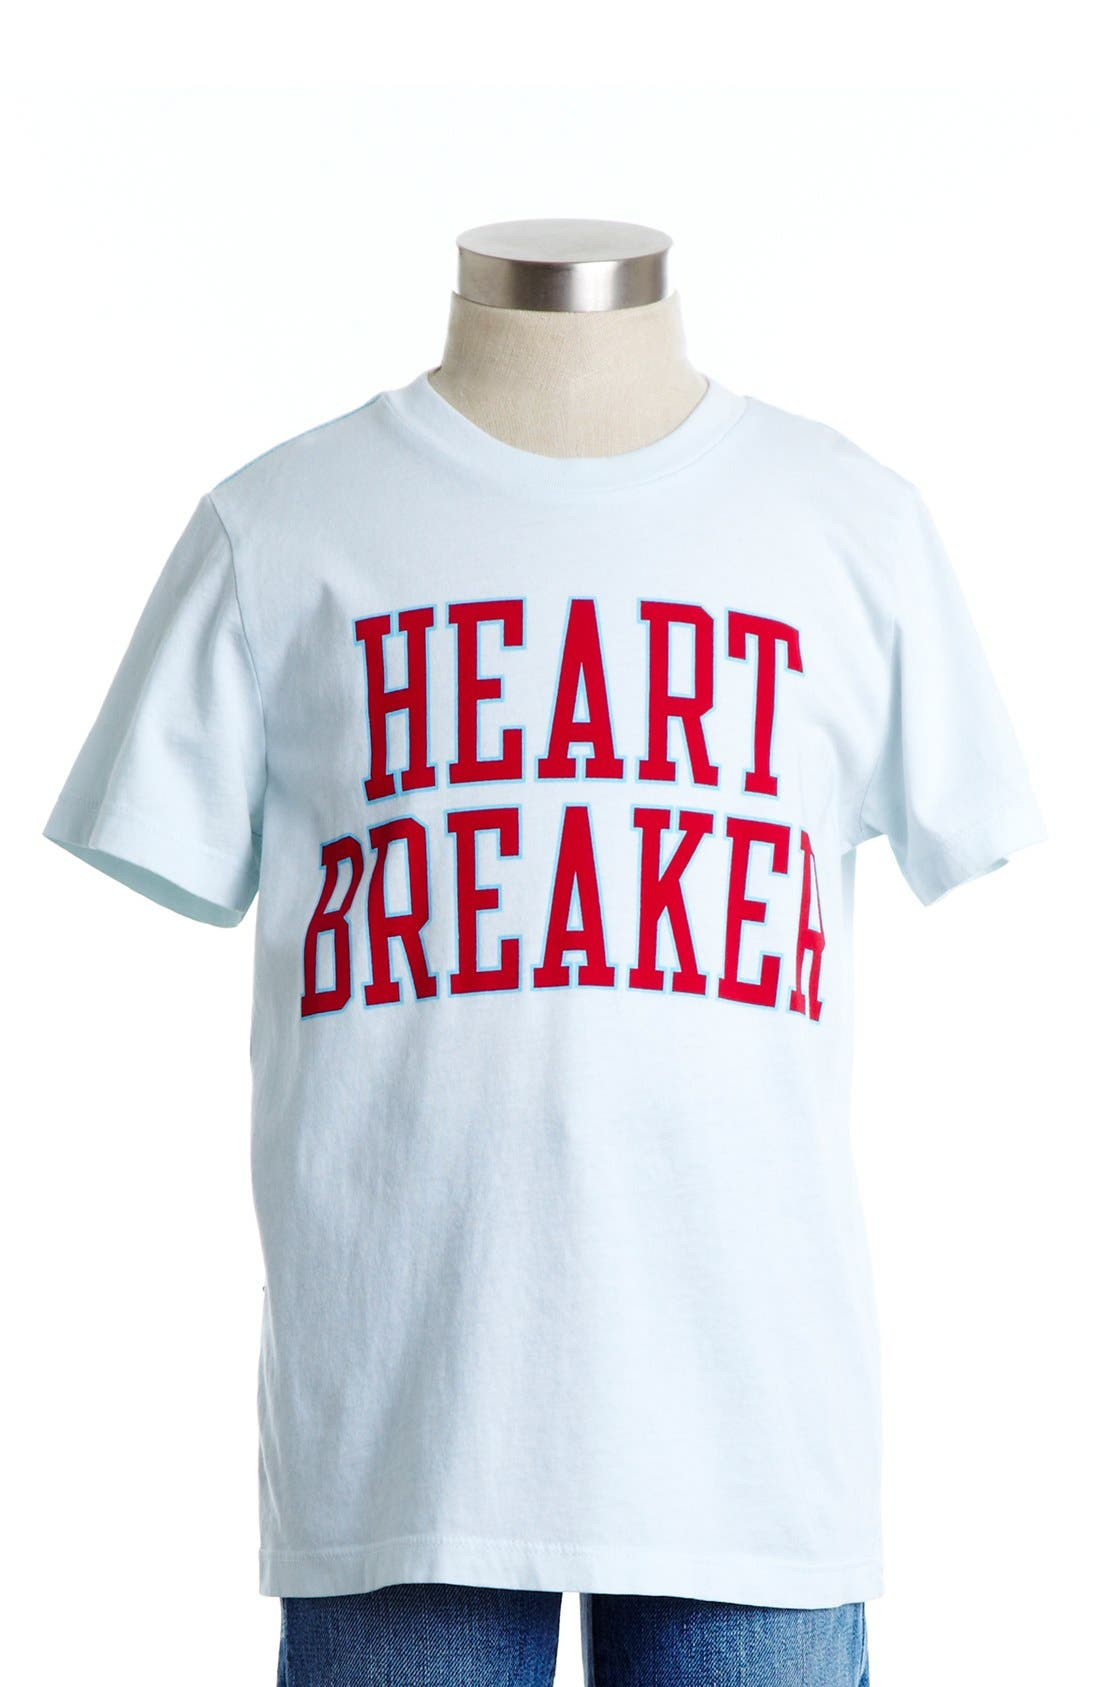 Alternate Image 1 Selected - Peek 'Heart Breaker' Graphic T-Shirt (Toddler Boys, Little Boys & Big Boys)